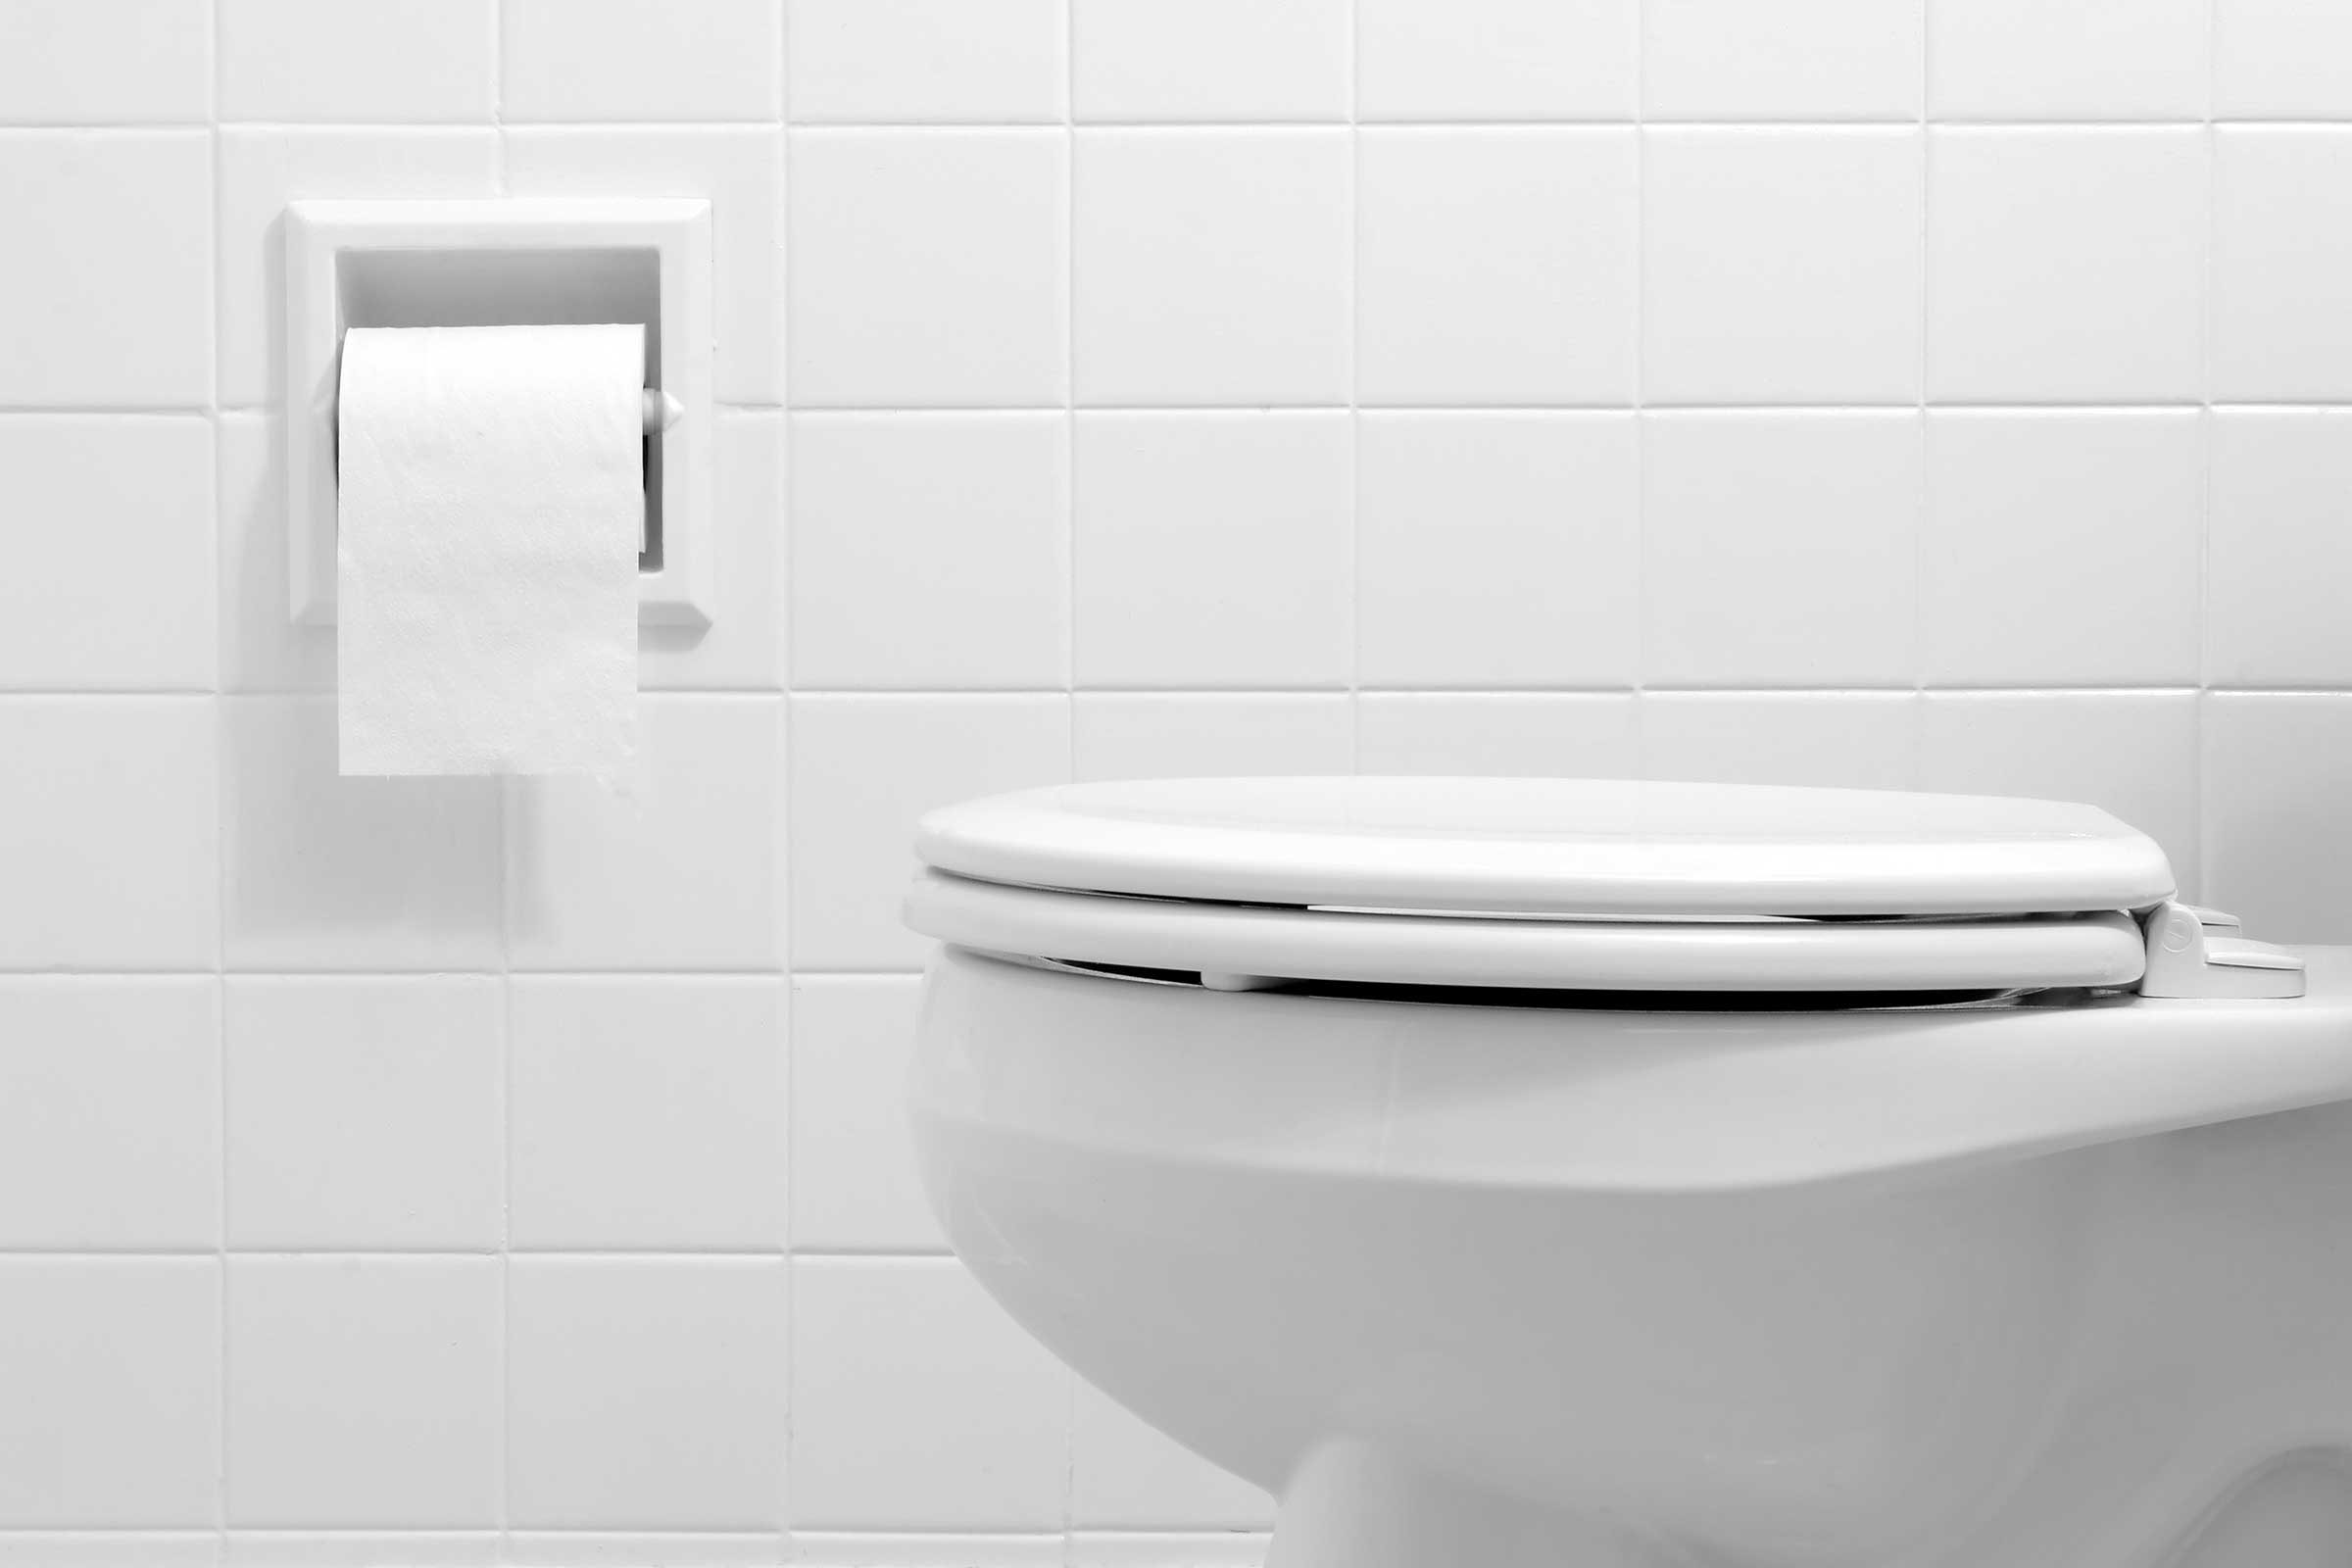 Problems going to the bathroom - Stool Shape Can Signal Trouble